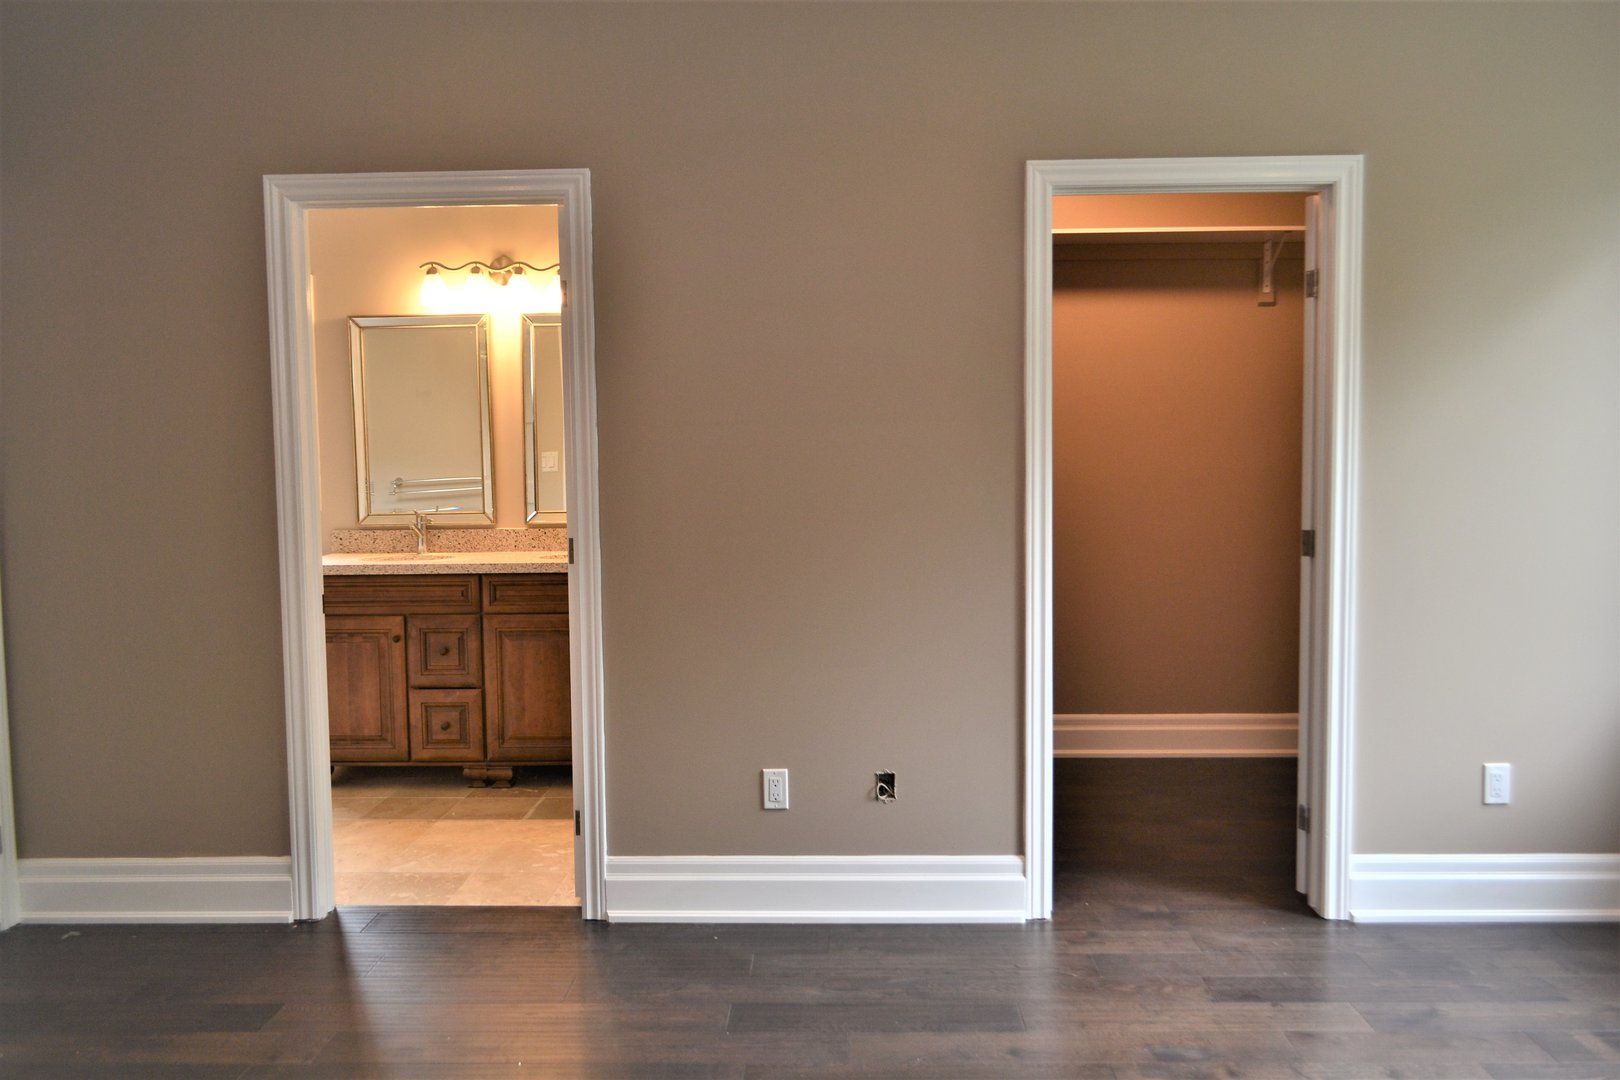 House for rent at 20 Sixth St, Etobicoke, ON. This is the empty room with tile floor and hardwood floor.